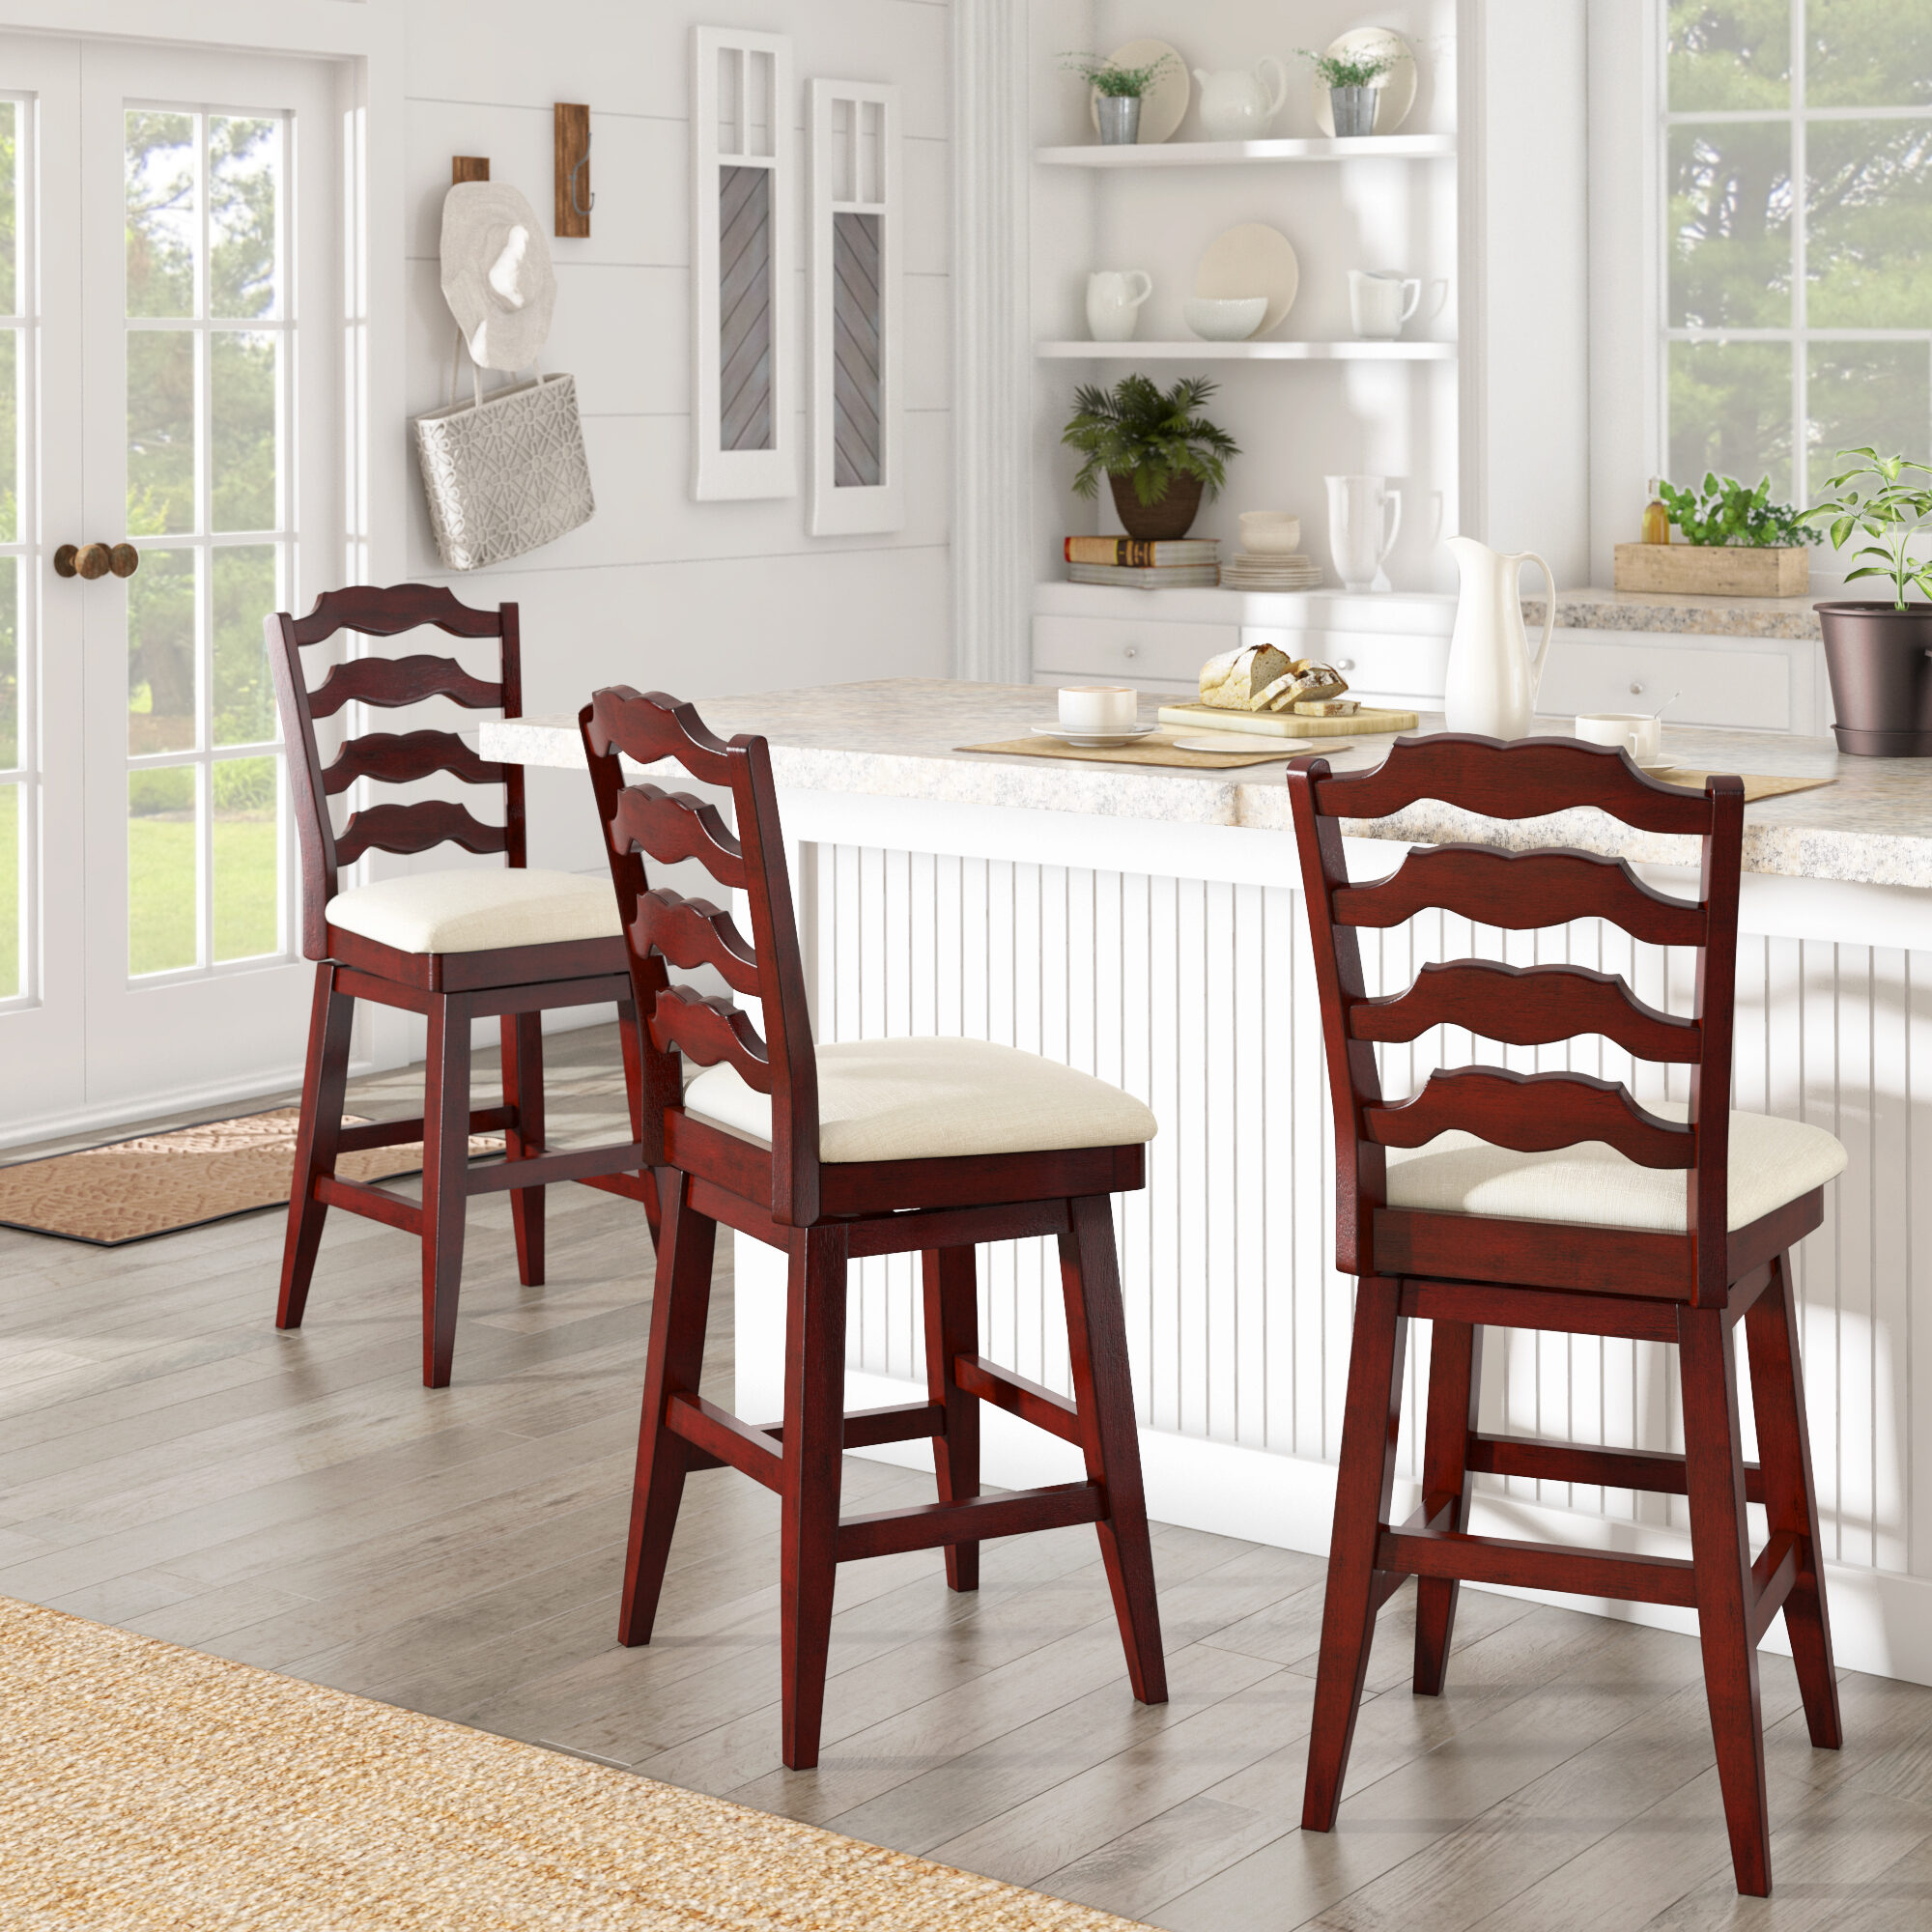 This red home décor idea features three of our French ladder back counter height swivel stools. They feature an antique berry red finish and beige linen seats. They're placed around a white countertop for an eye-catching contrast.